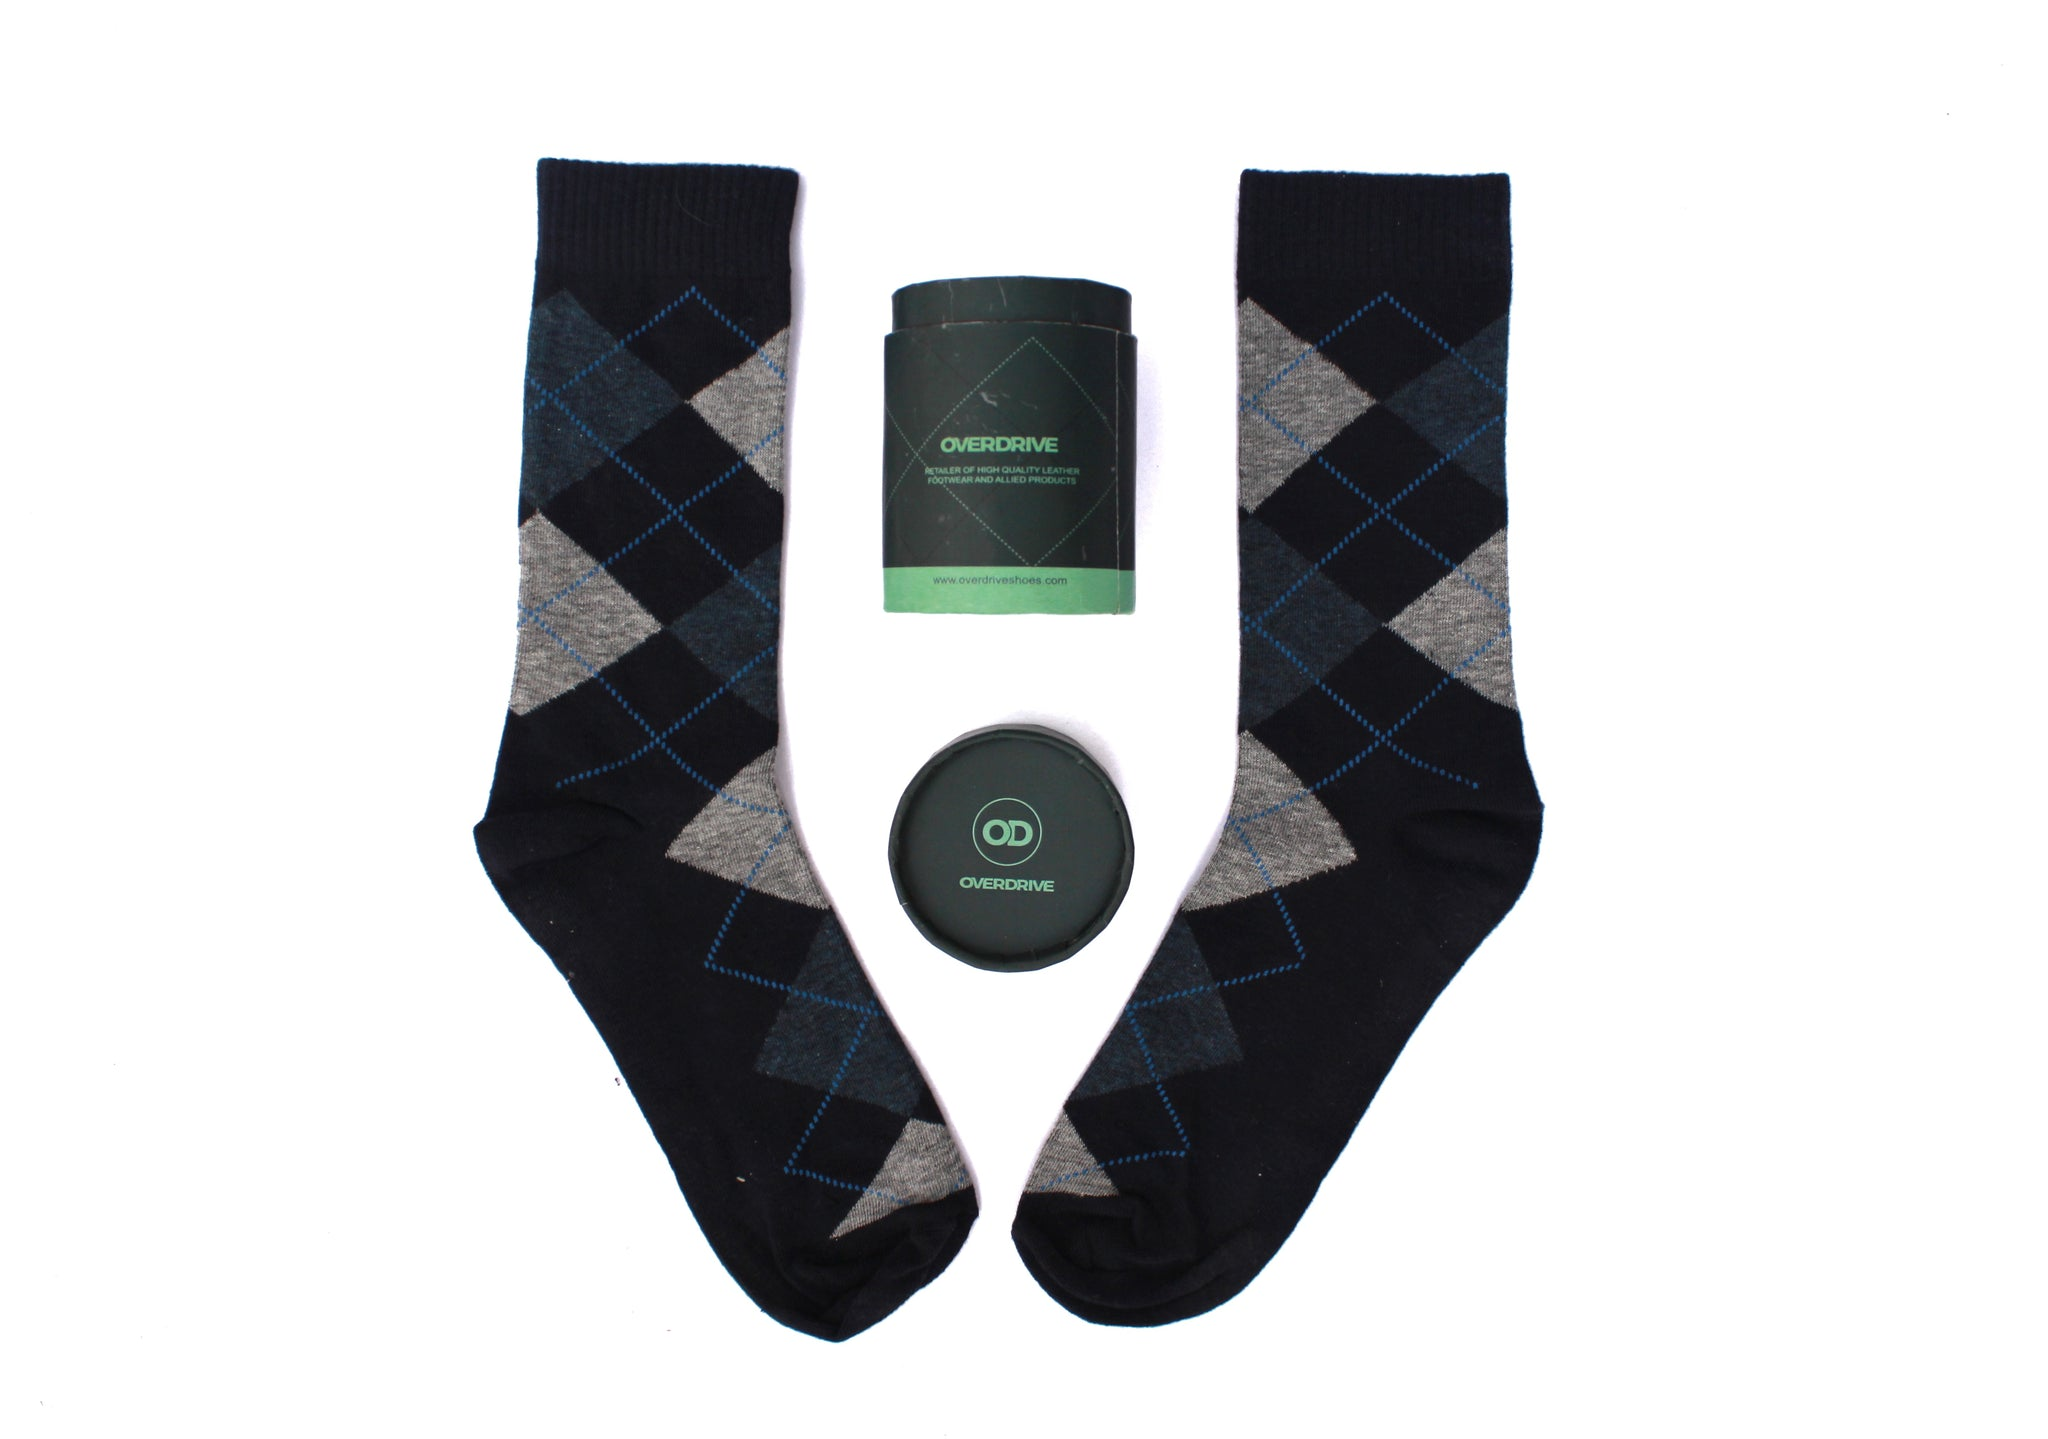 Men's Otter Human Kind Cotton Socks